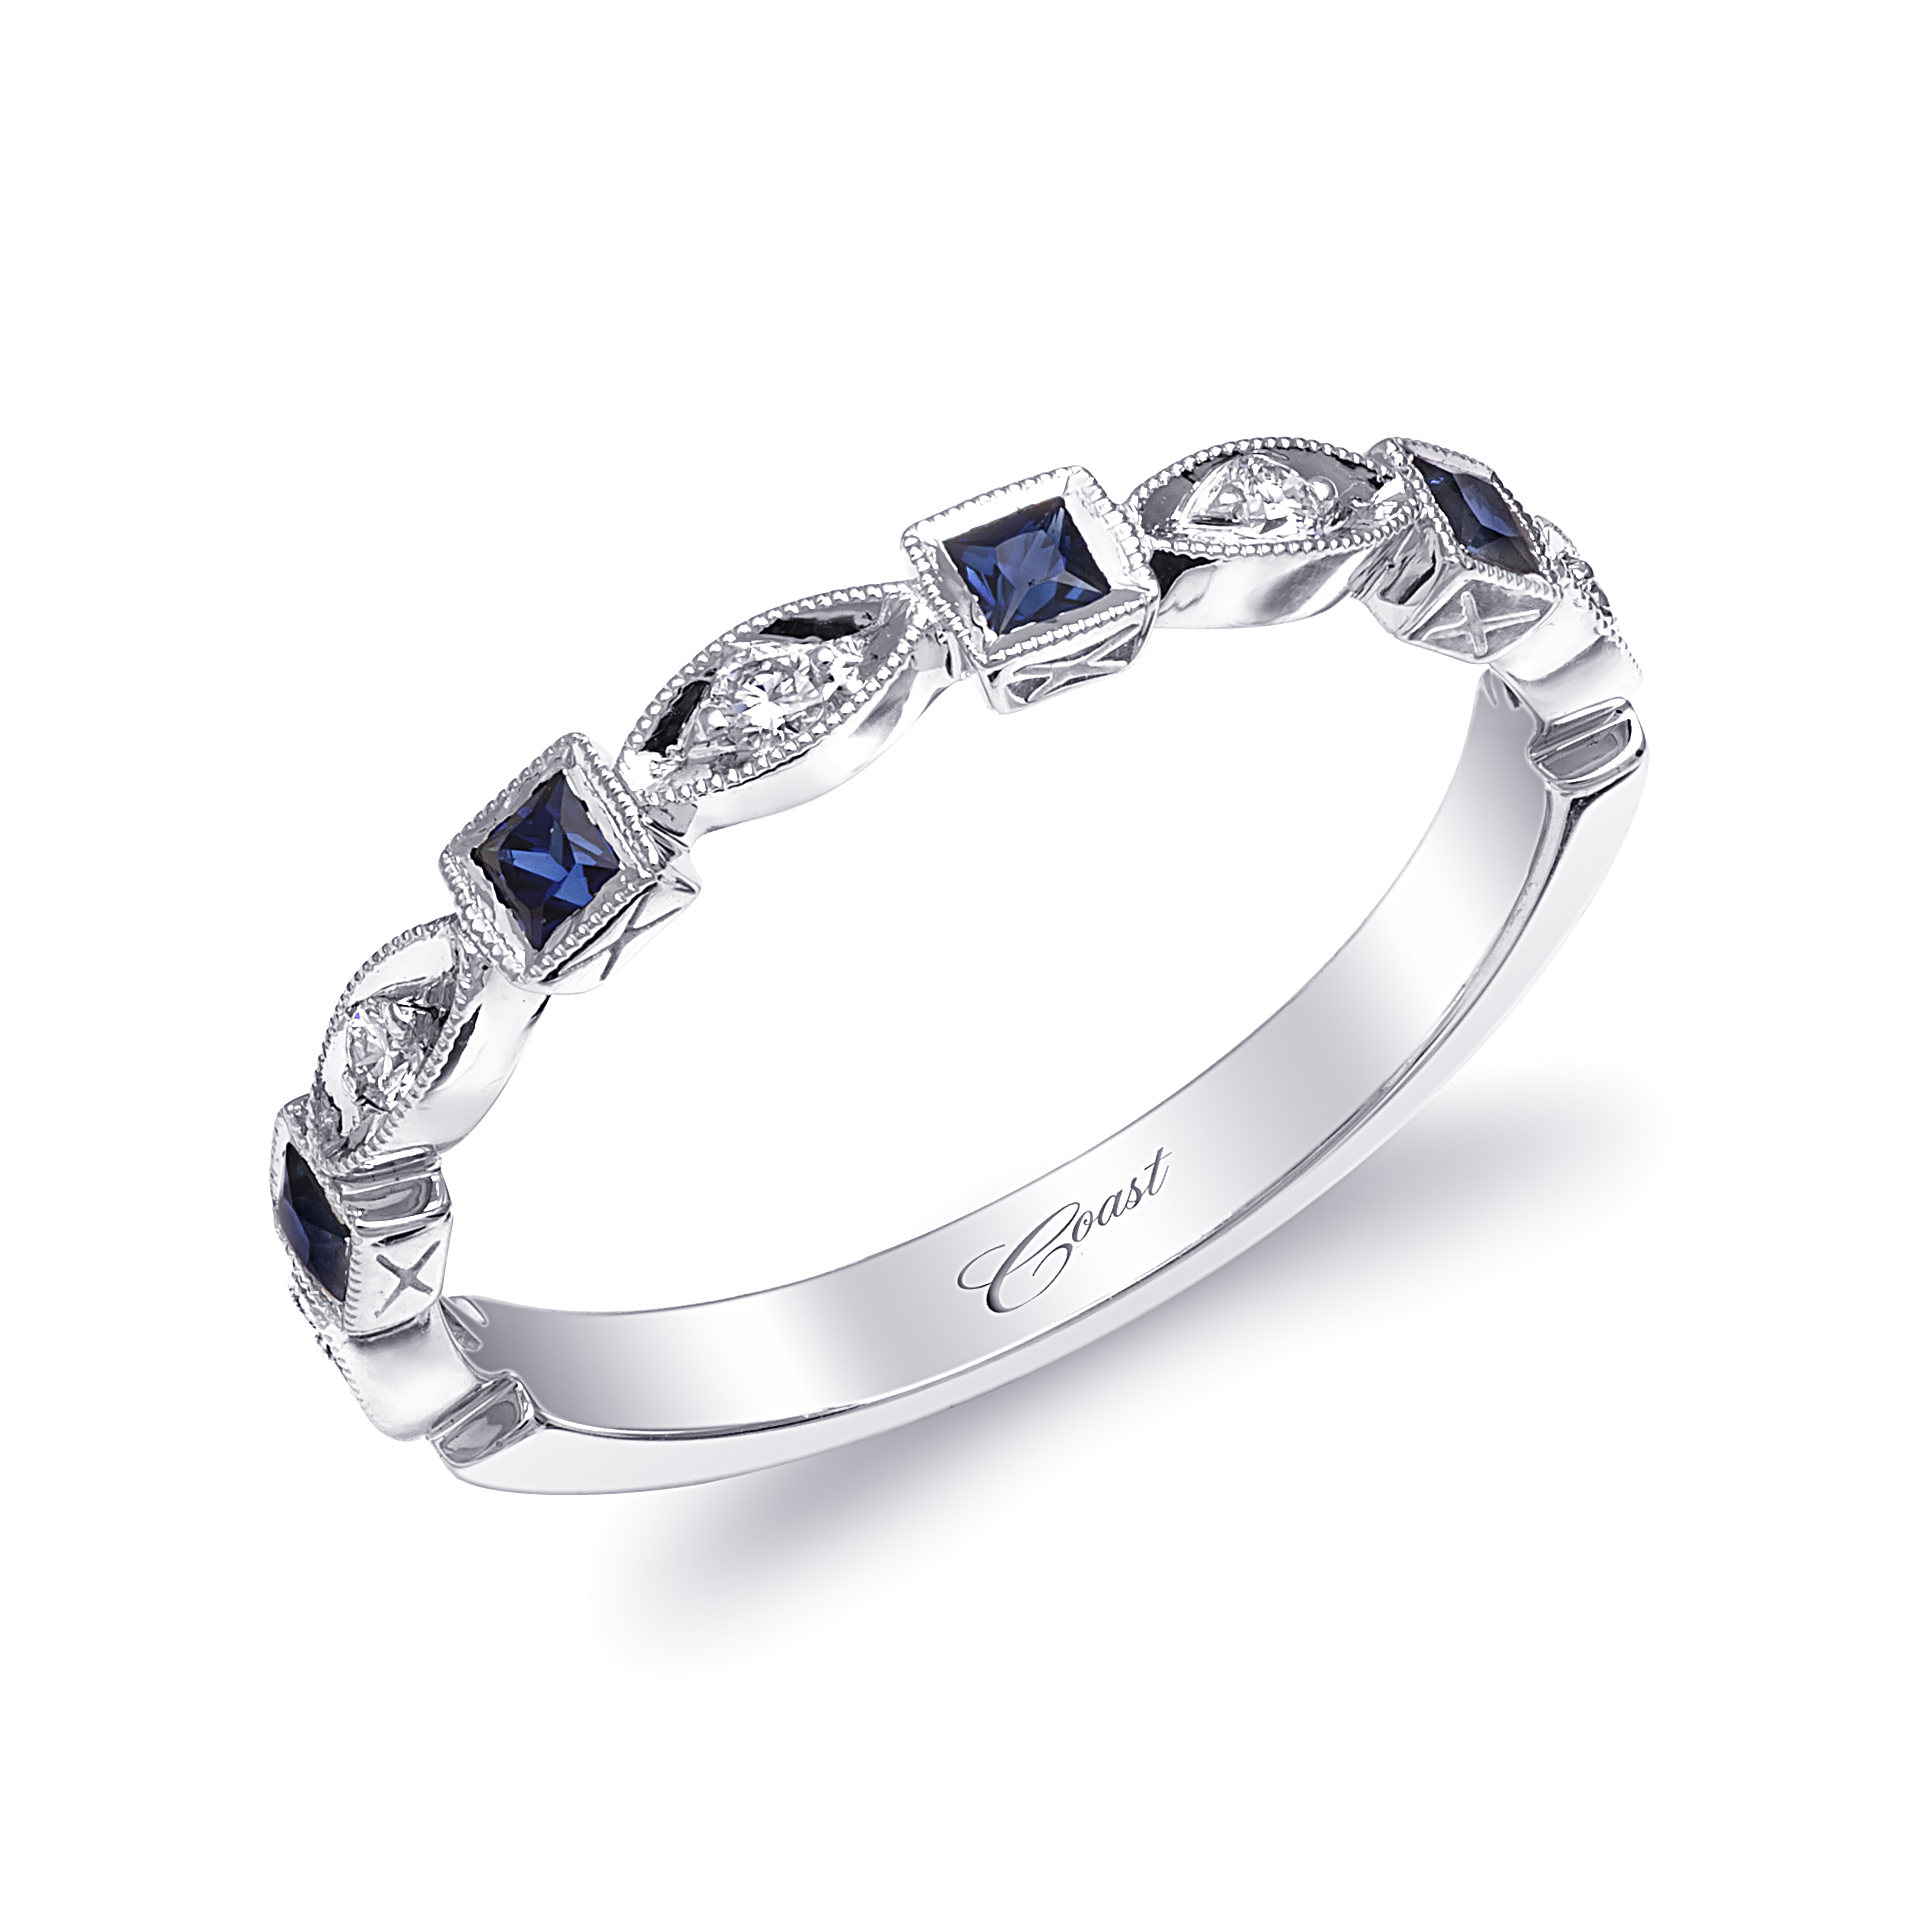 jewellers beautiful ring campbell platinum diamondengagementring crafted campbelljewellers gorgeous products ireland the most diamond in rings contemporary engagement master